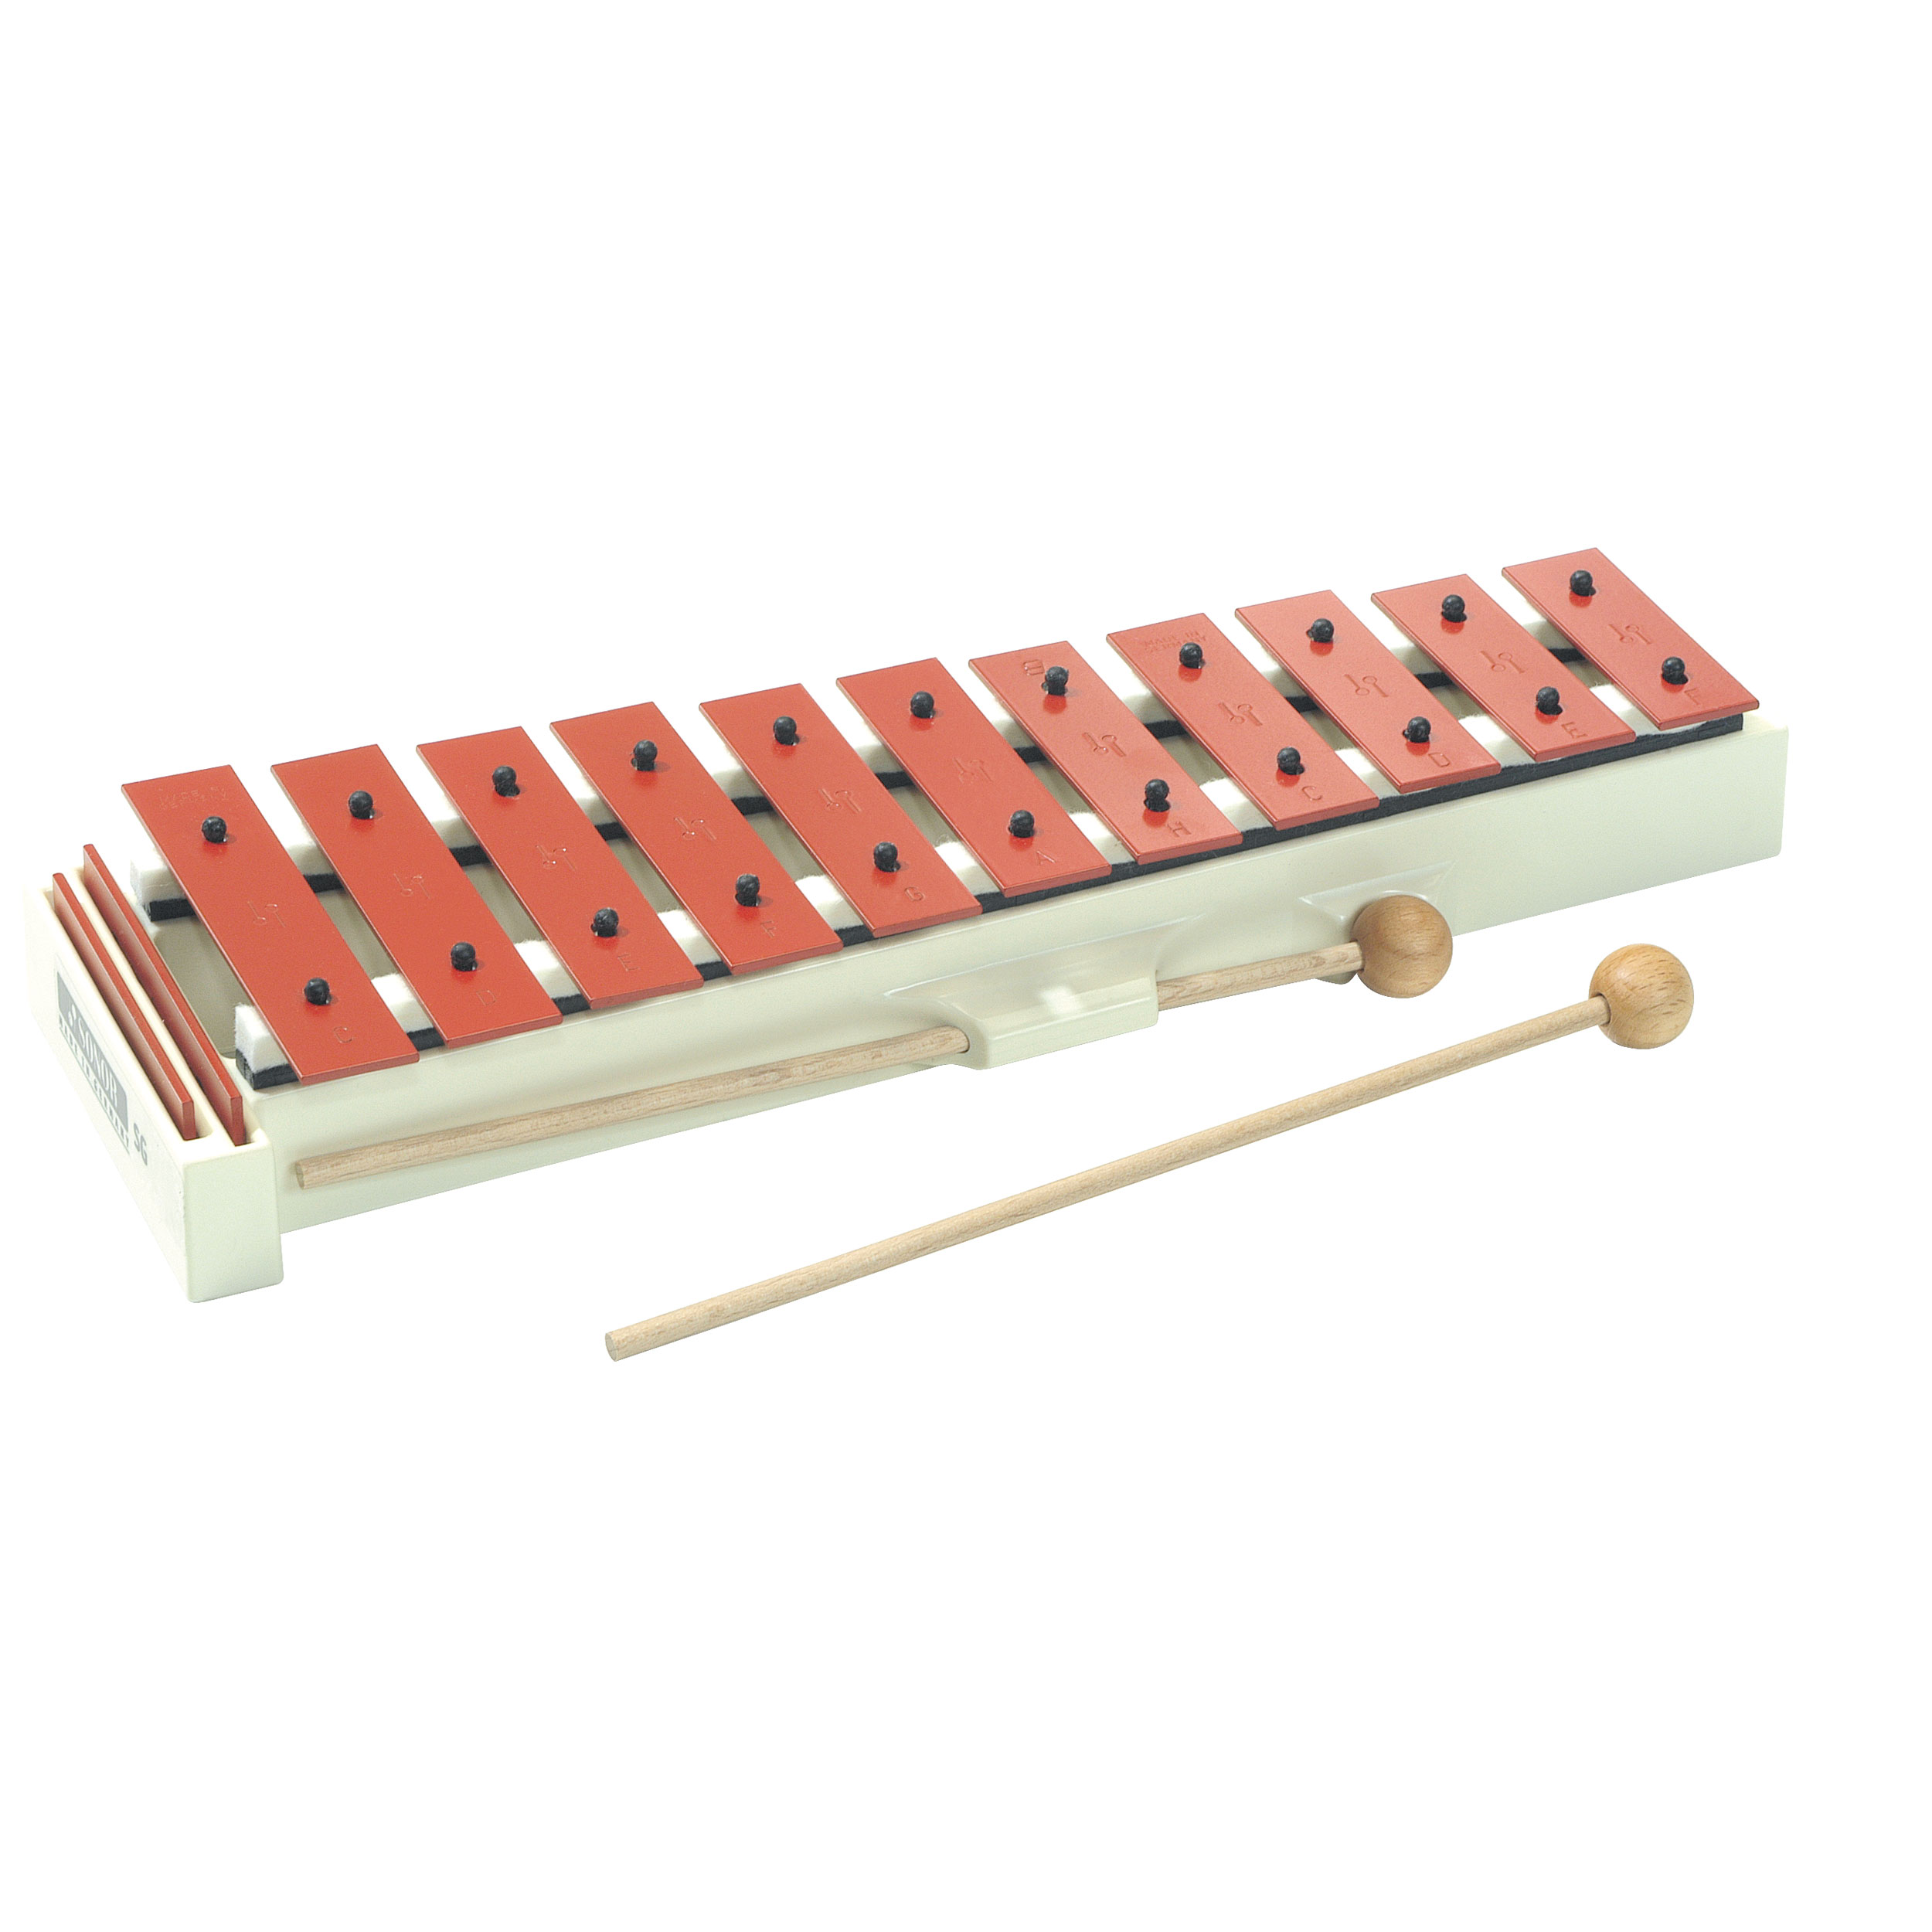 Sonor Orff Soprano Diatonic Glockenspiel, Red Bars